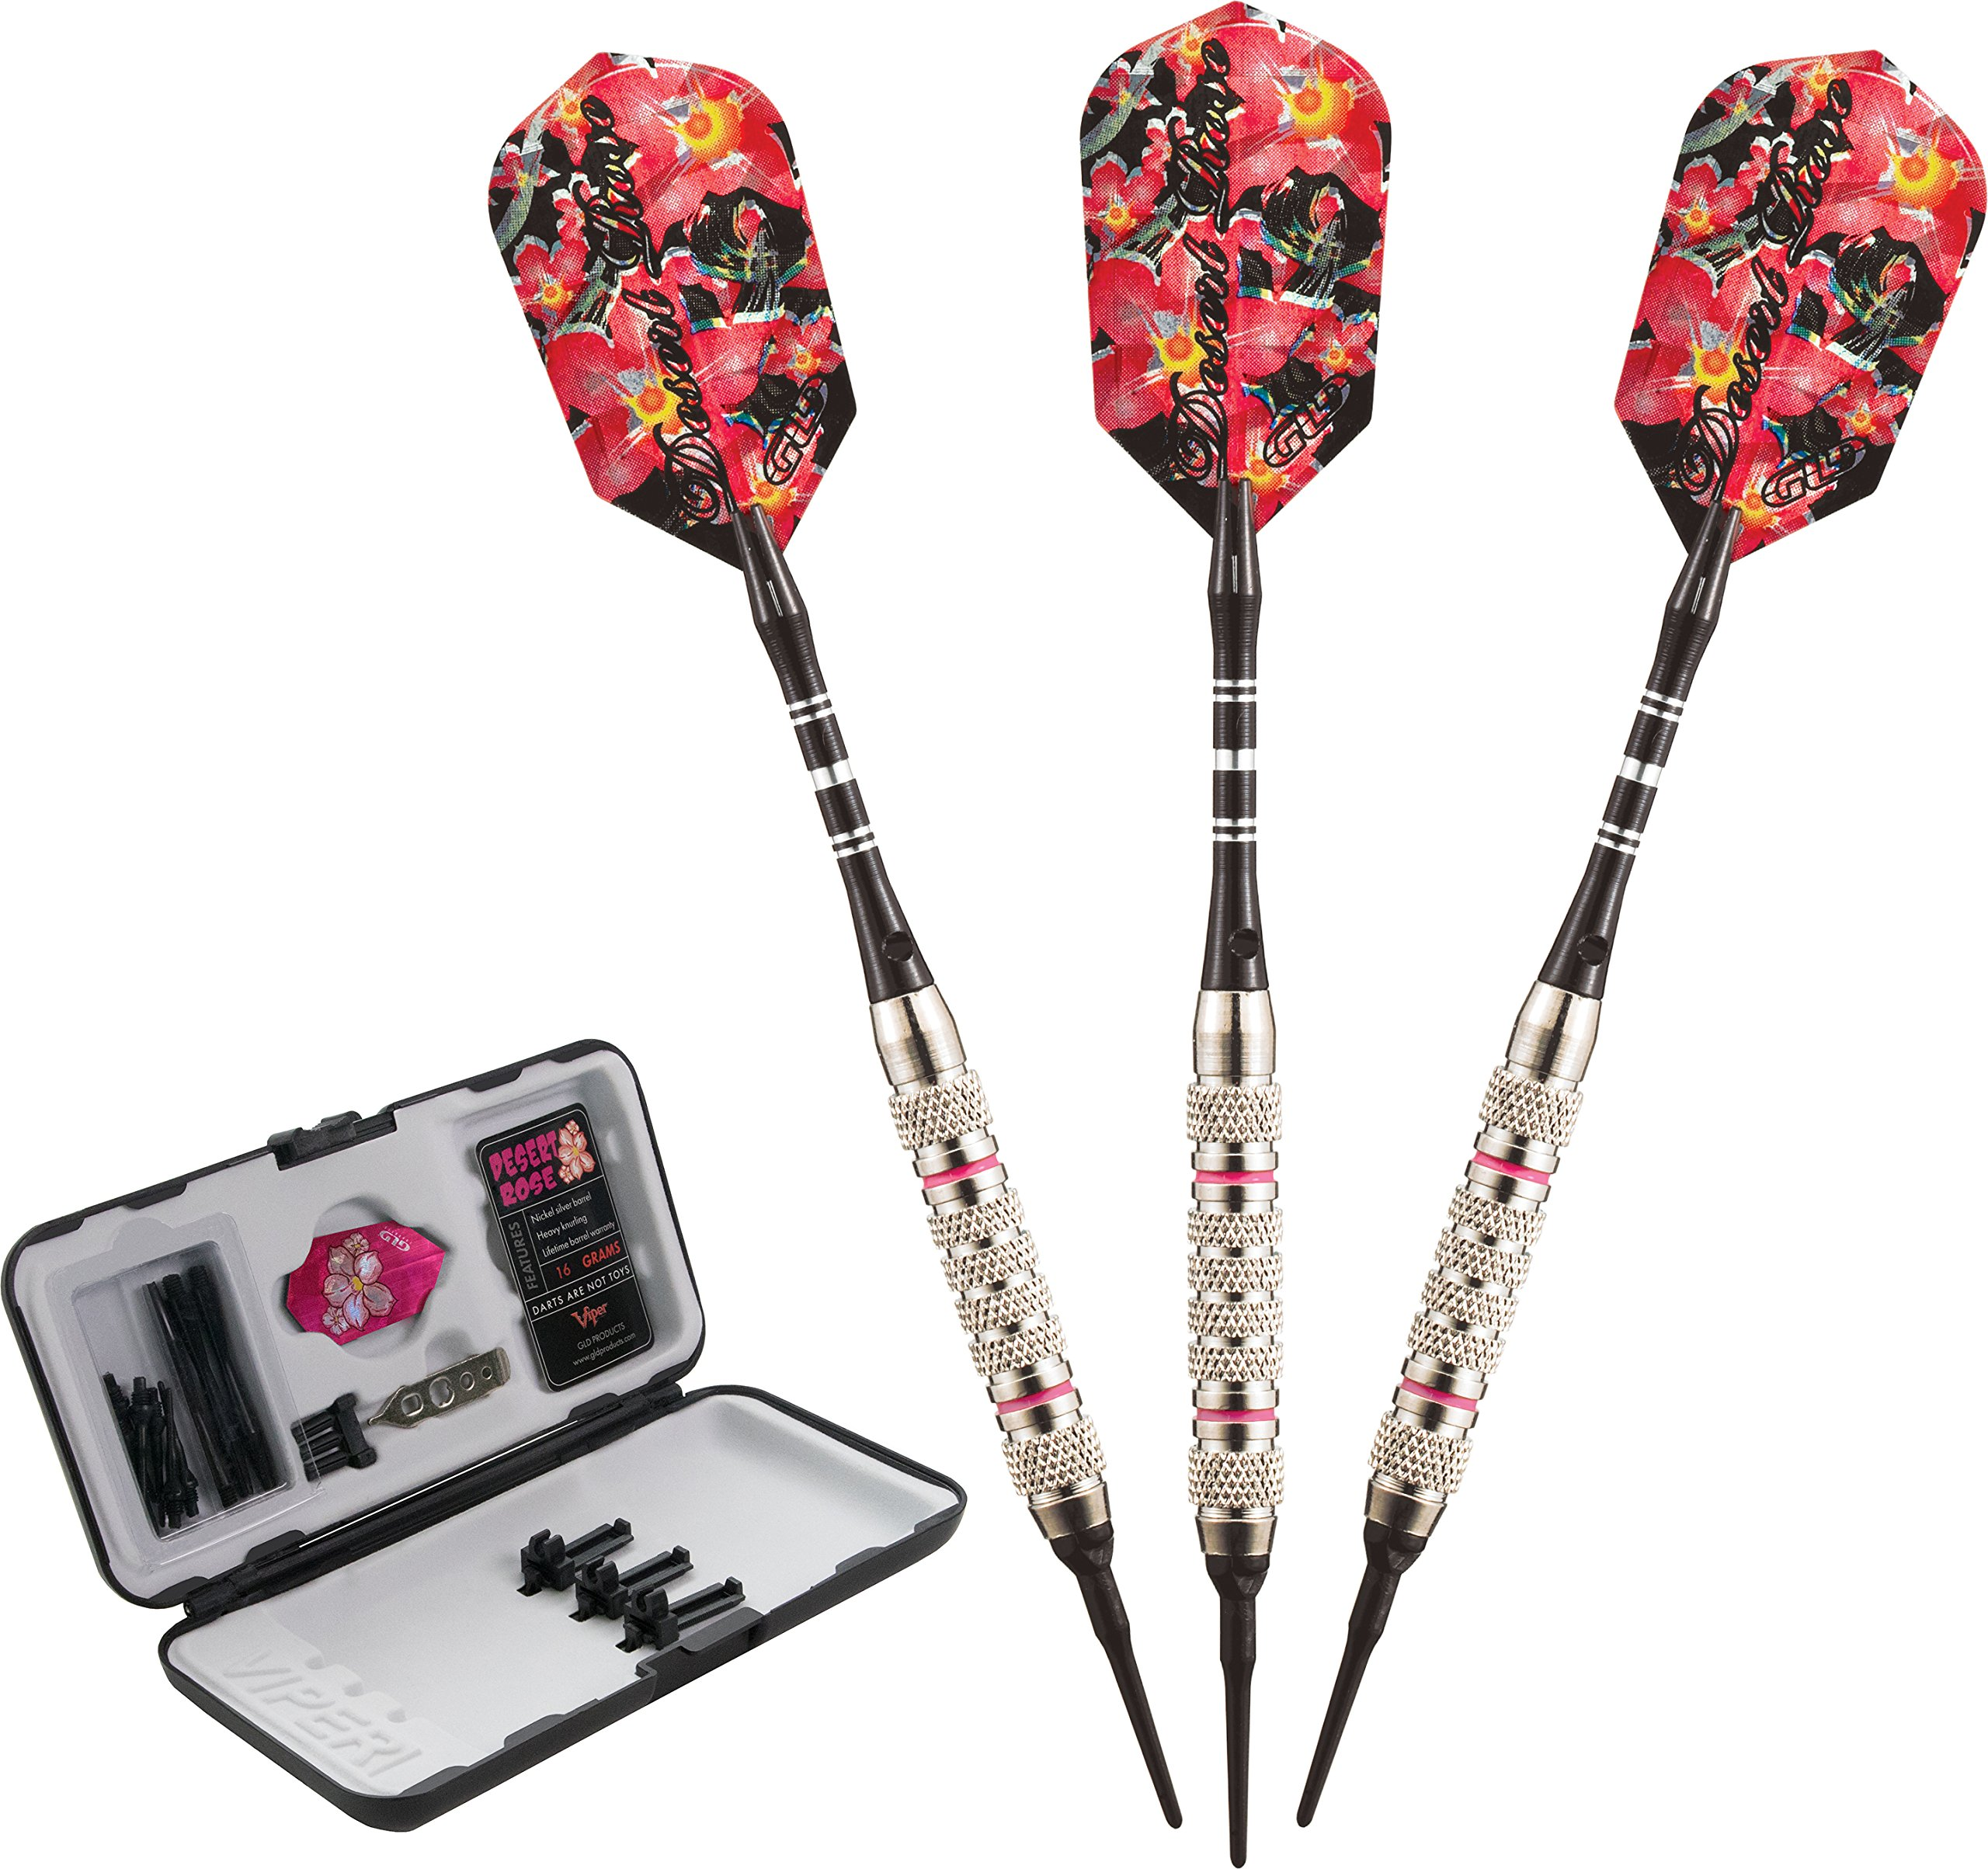 Viper Desert Rose Soft Tip Darts with Storage/Travel Case, 16 Grams by Viper by GLD Products